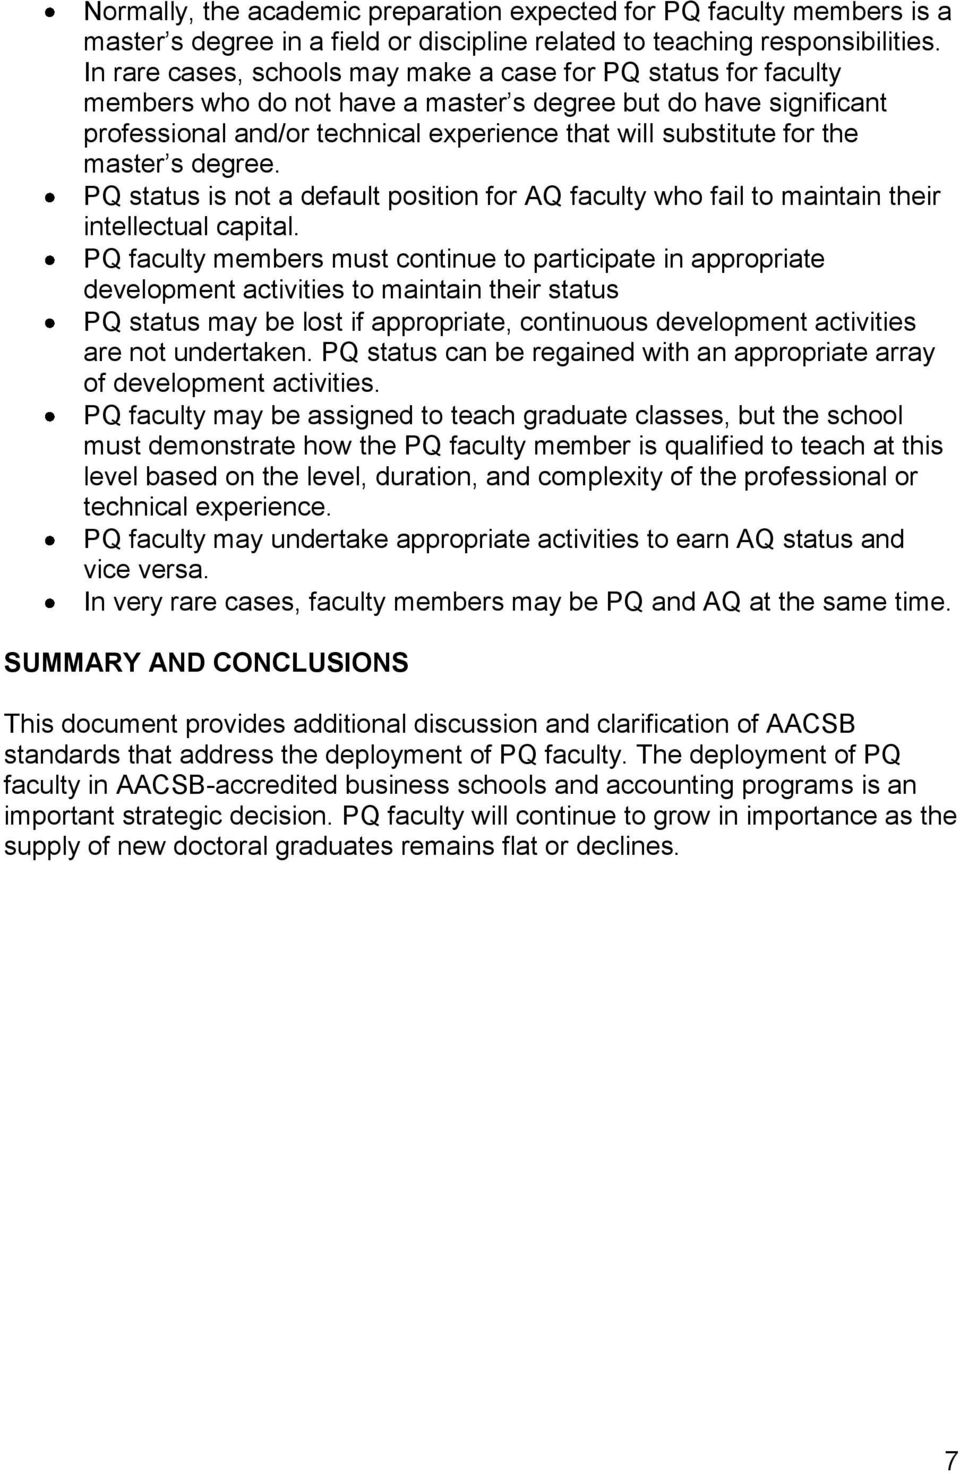 the master s degree. PQ status is not a default position for AQ faculty who fail to maintain their intellectual capital.